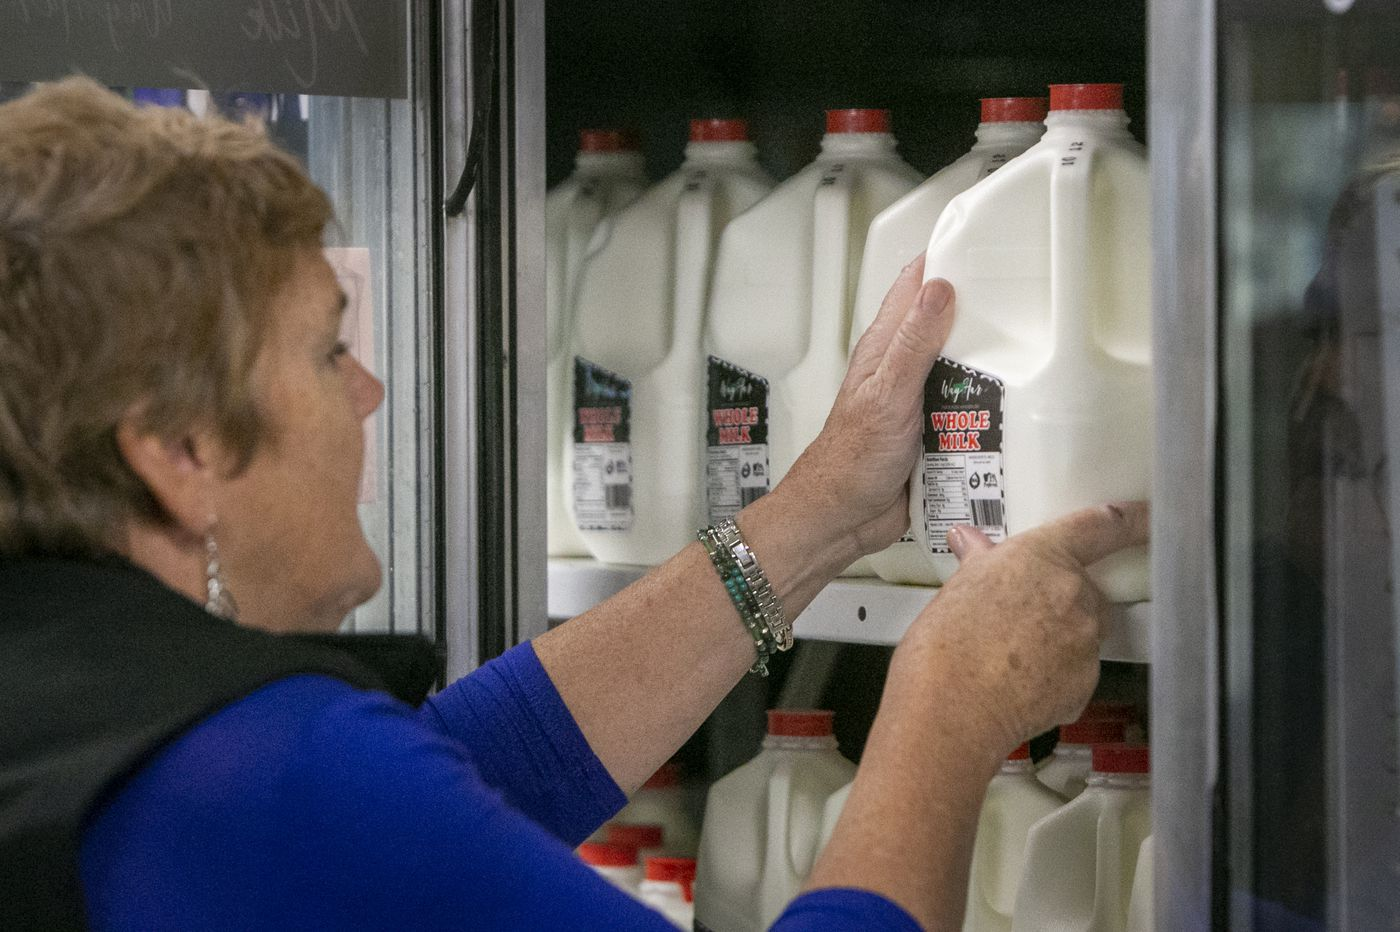 What exactly is milk? Depends on whom you ask.